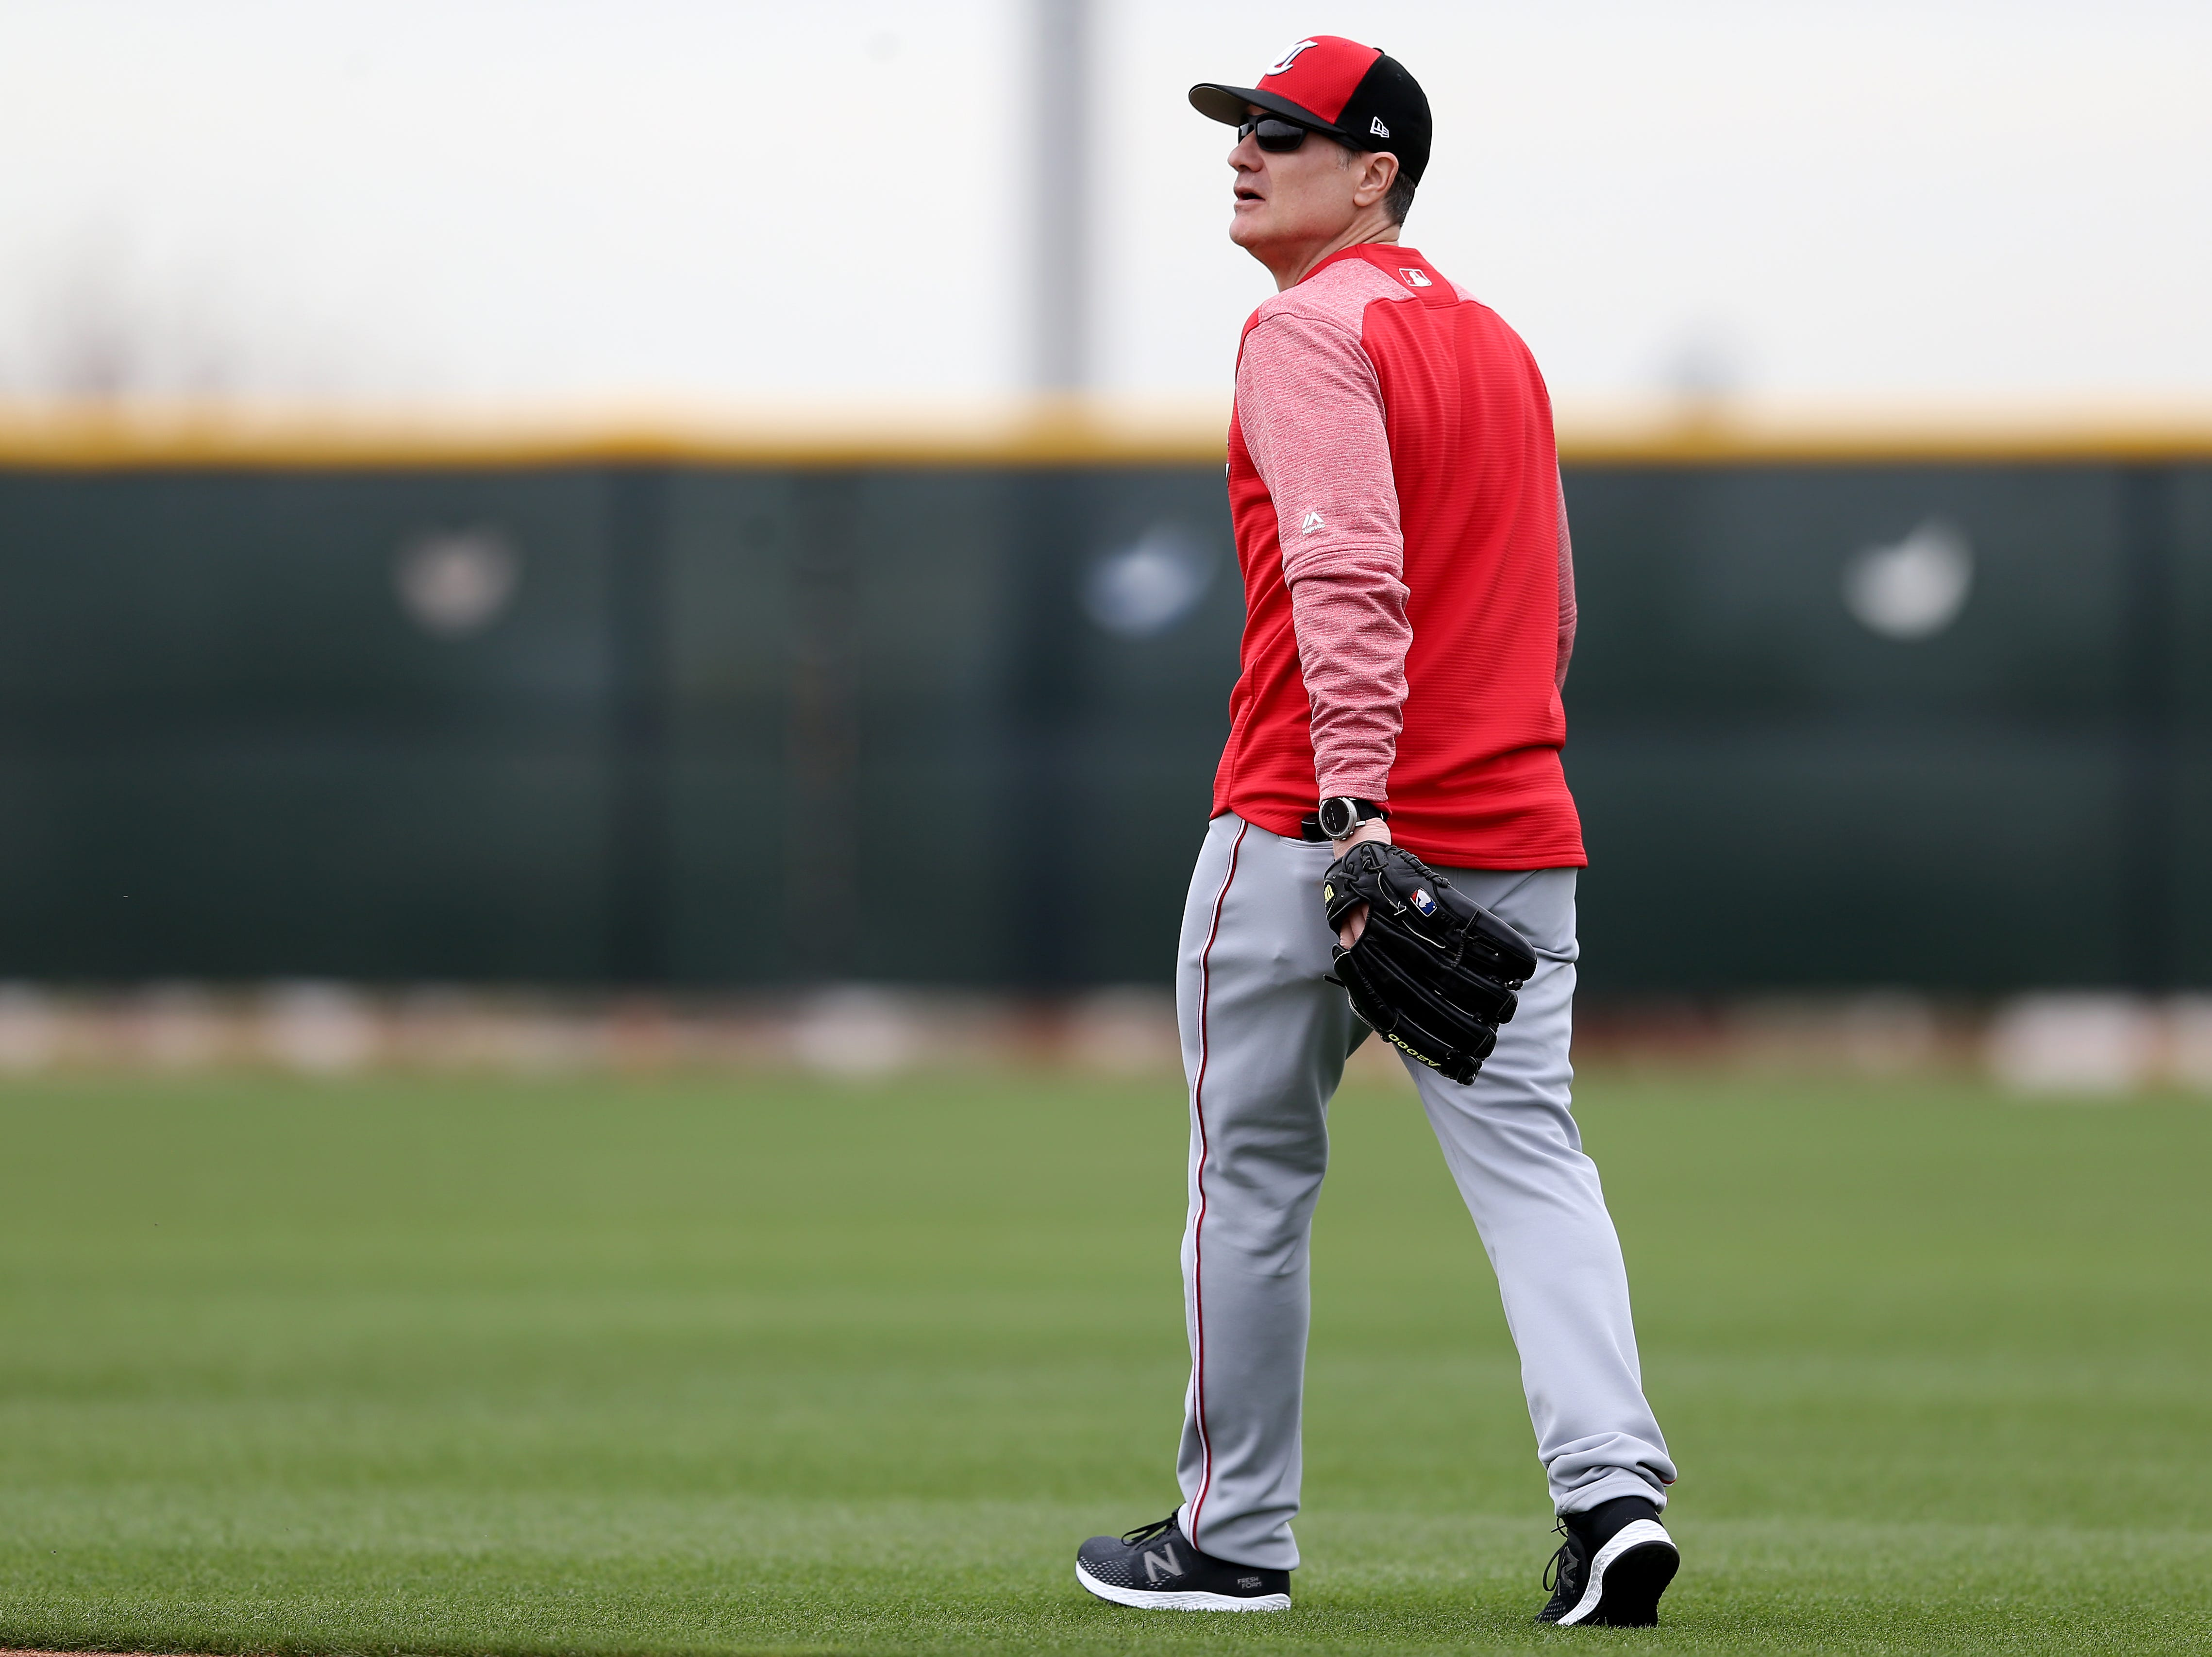 Cincinnati Reds manager David Bell (25) walks to the outfield during drills, Wednesday, Feb. 13, 2019, at the Cincinnati Reds spring training facility in Goodyear, Arizona.